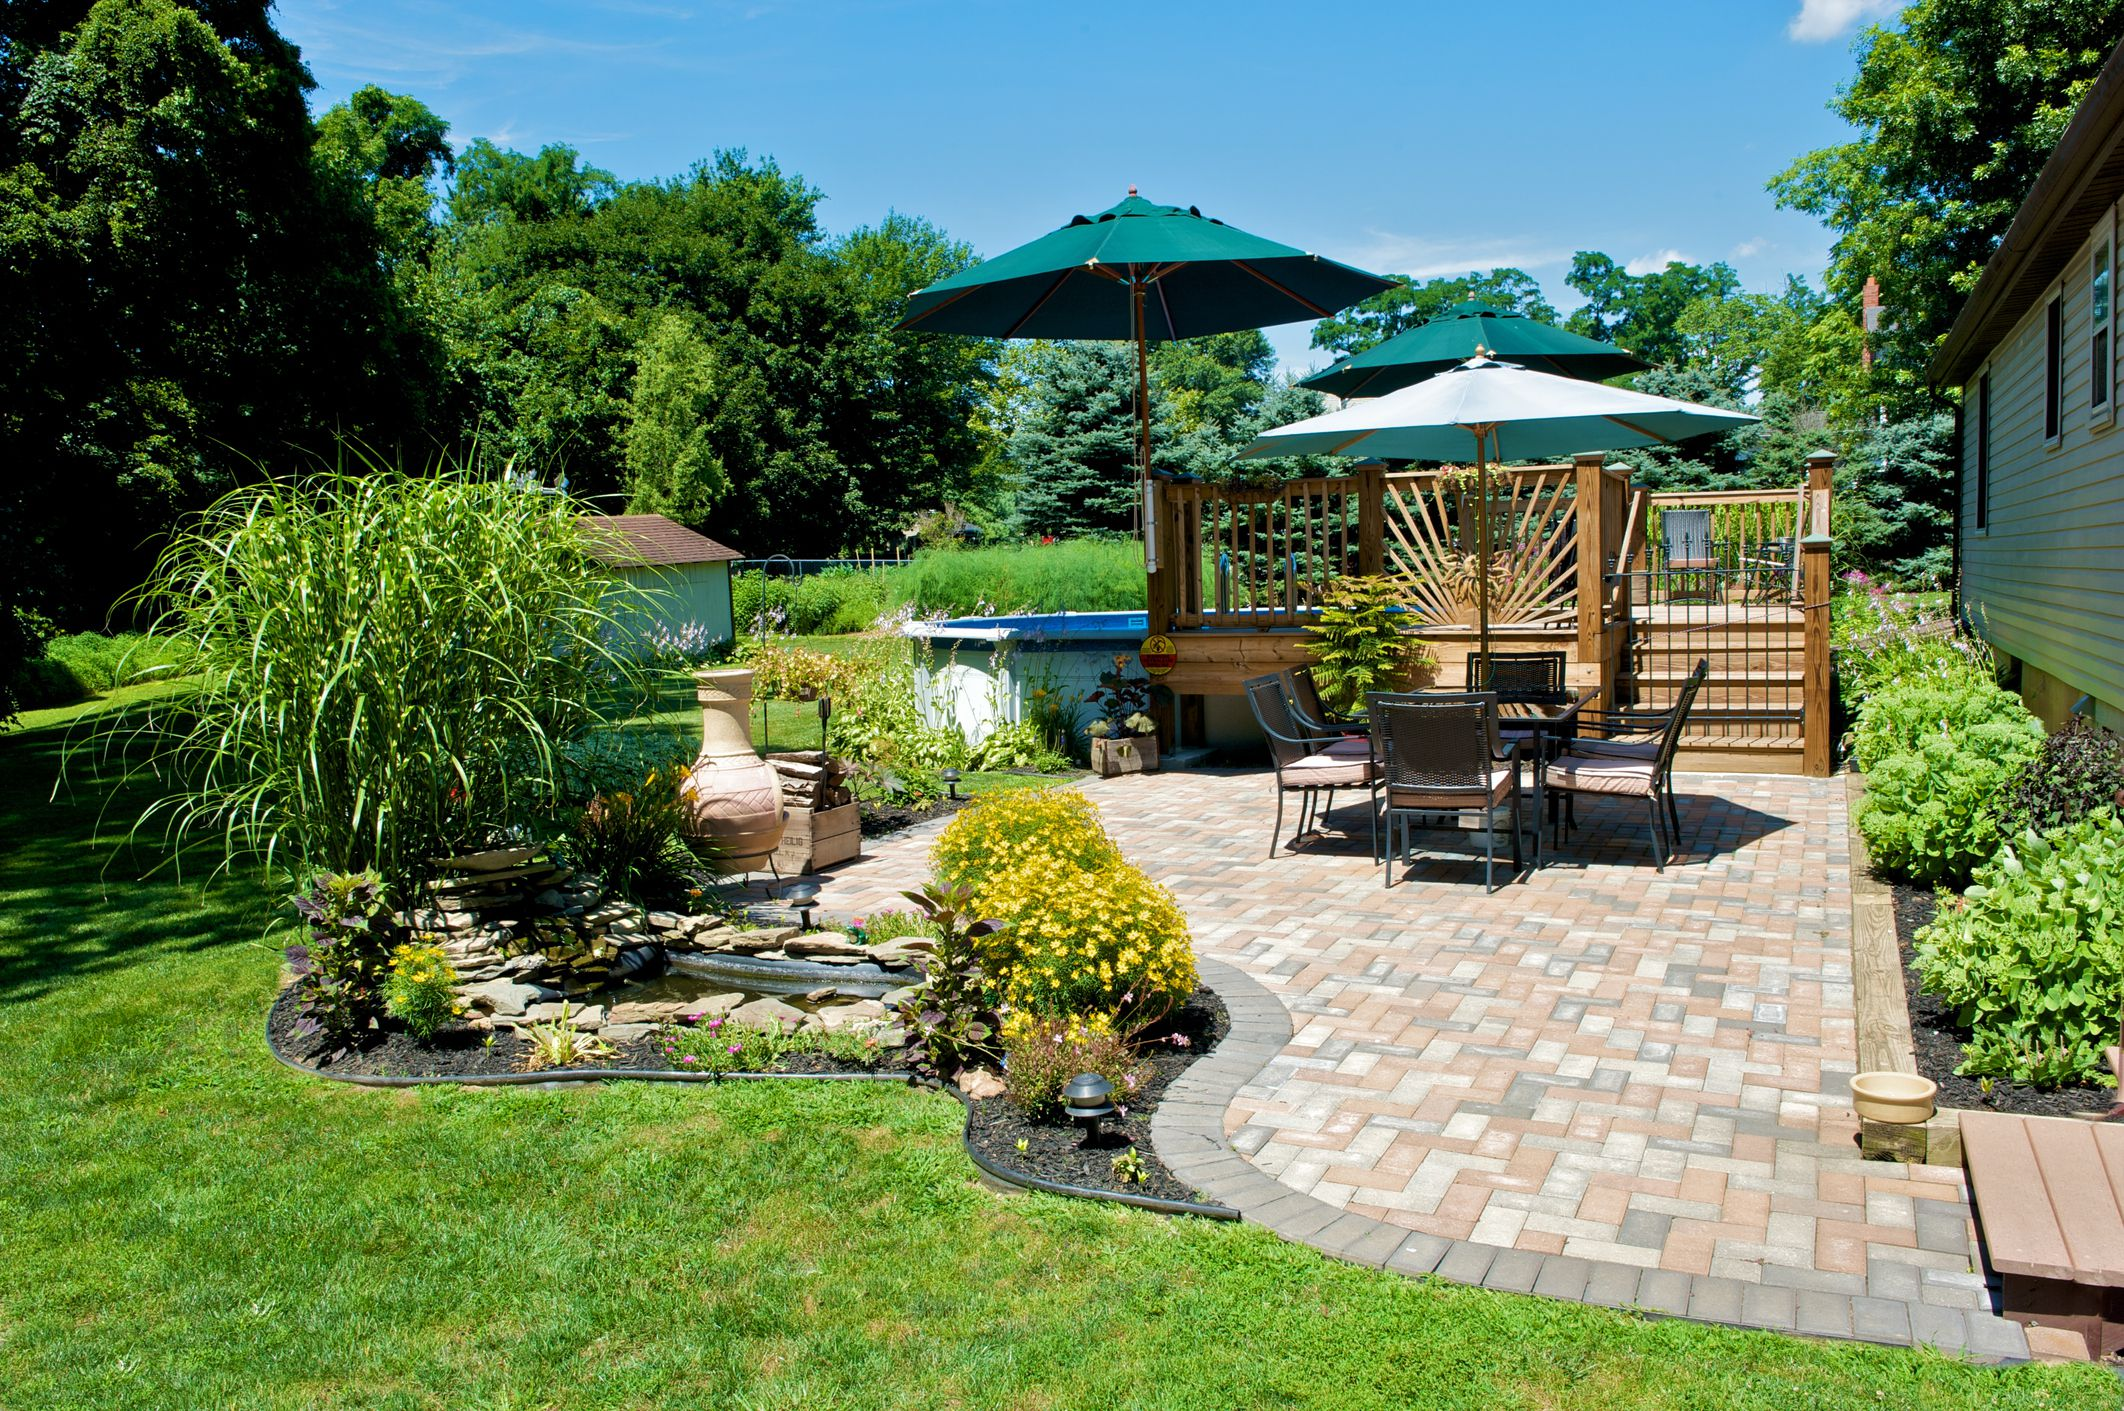 49 outdoor patio ideas that will excite